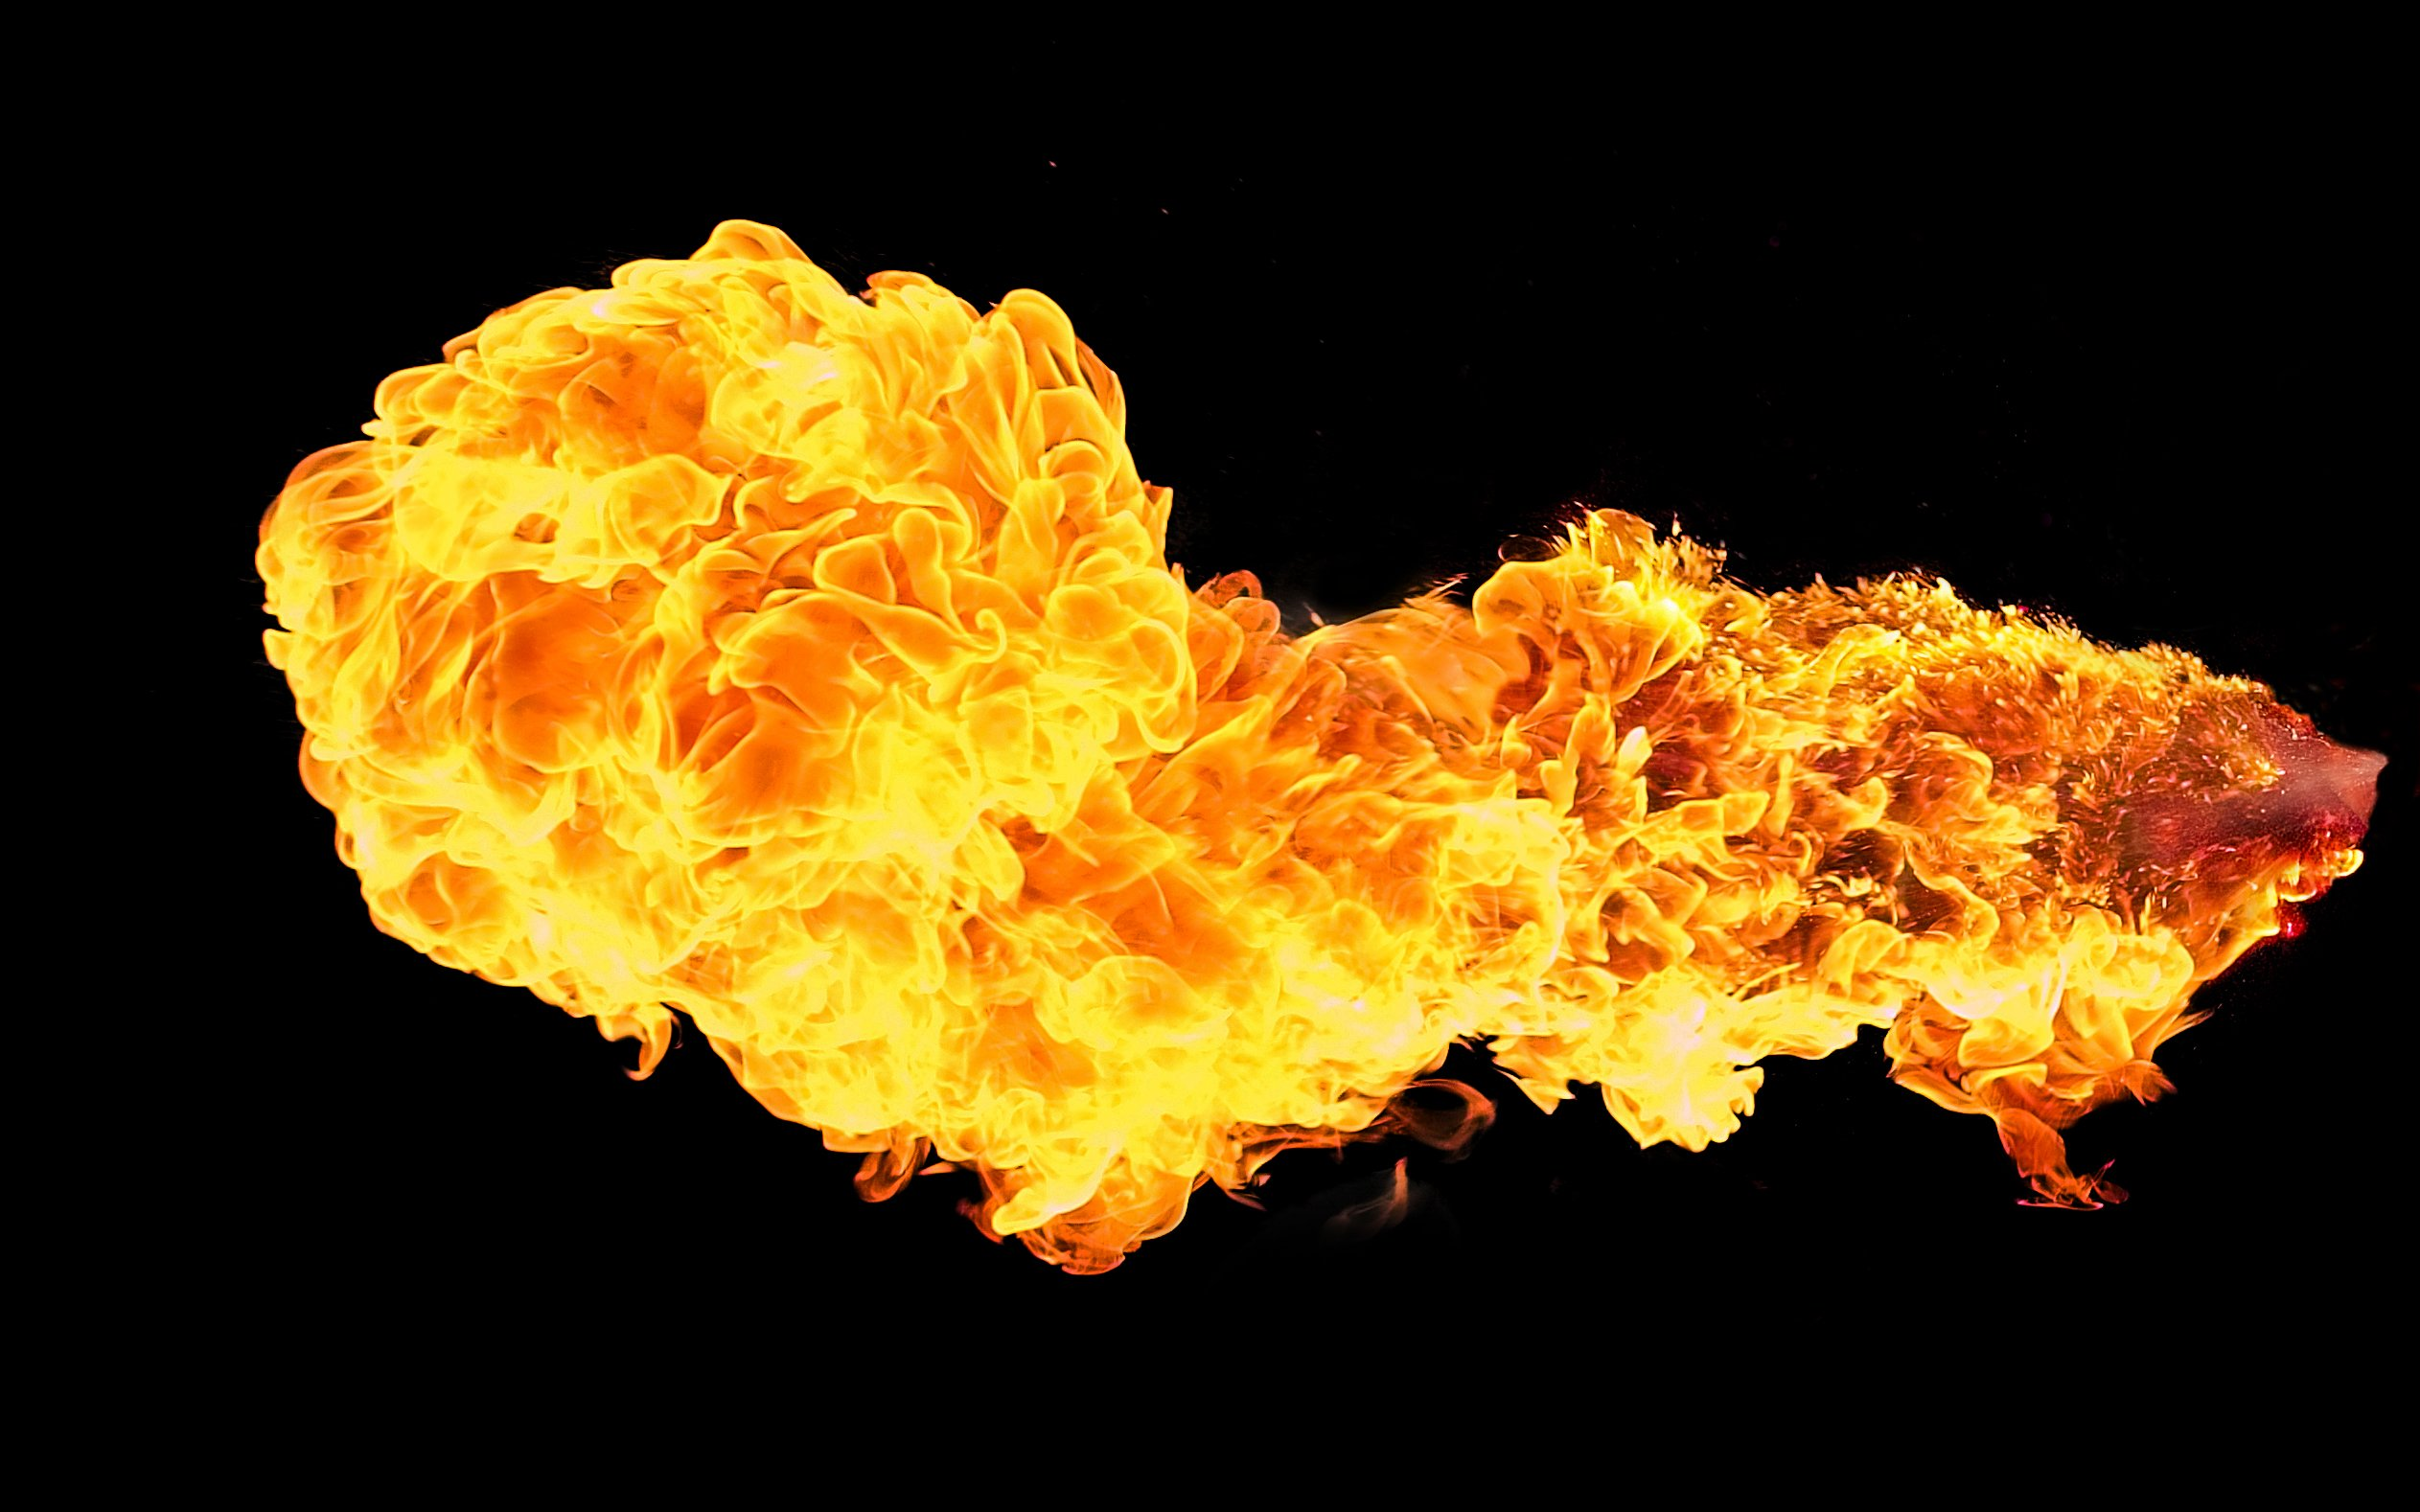 35 HD And QHD Wallpapers Of Fire For Your Backgrounds